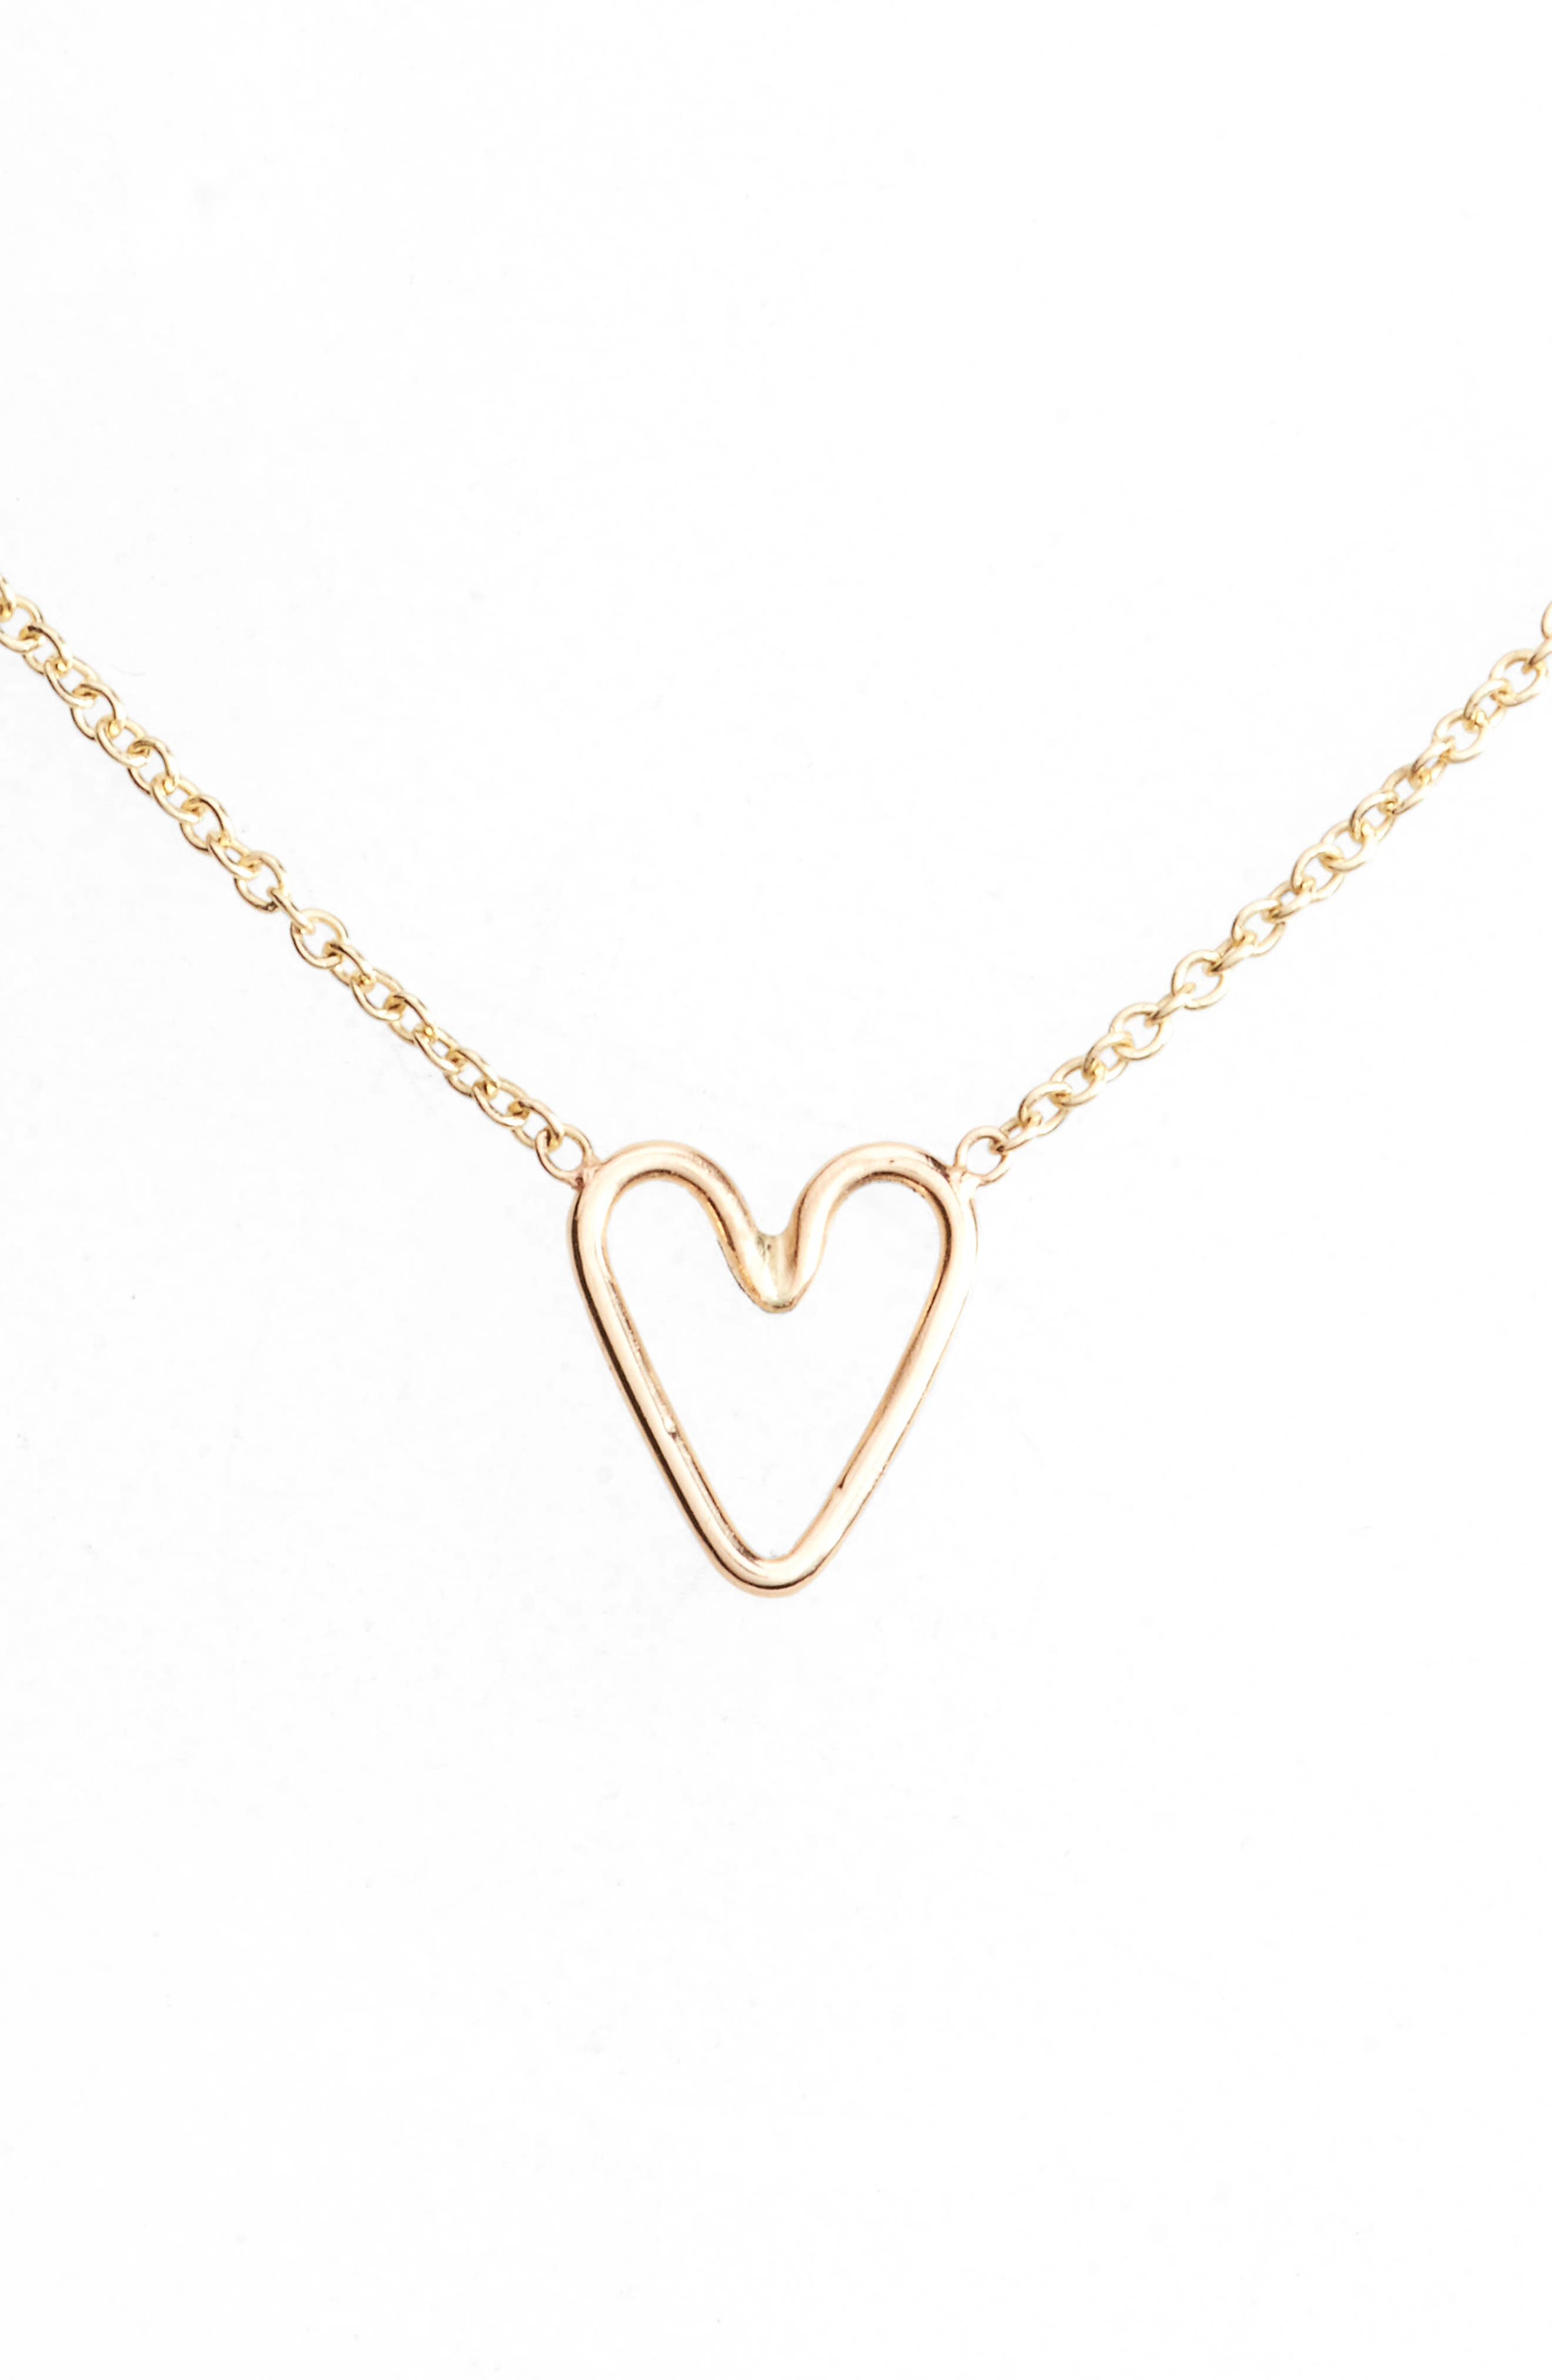 Tiny Open Heart Pendant Necklace,                             Main thumbnail 1, color,                             Yellow Gold